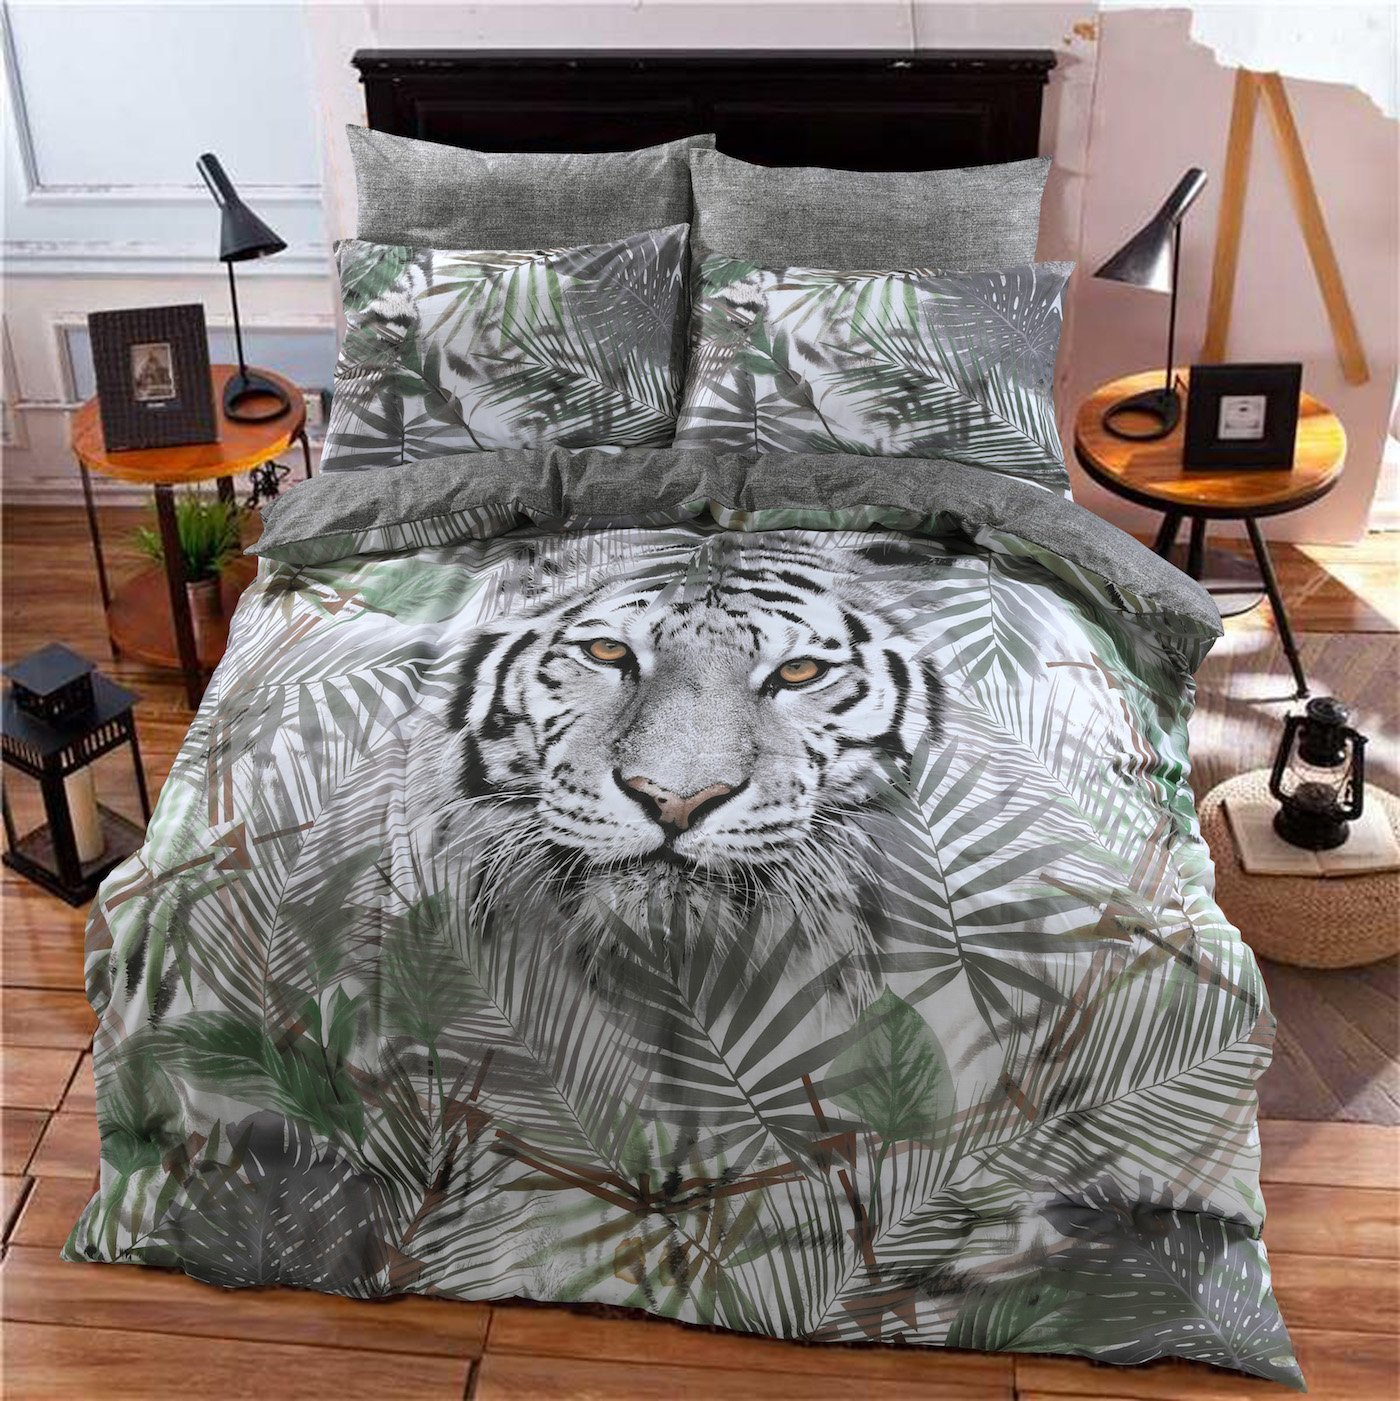 PIERIDAE Daytime Pug Animal Print 3D Design Duvet Cover Quilt Bedding Set with Pillowcases (Double)